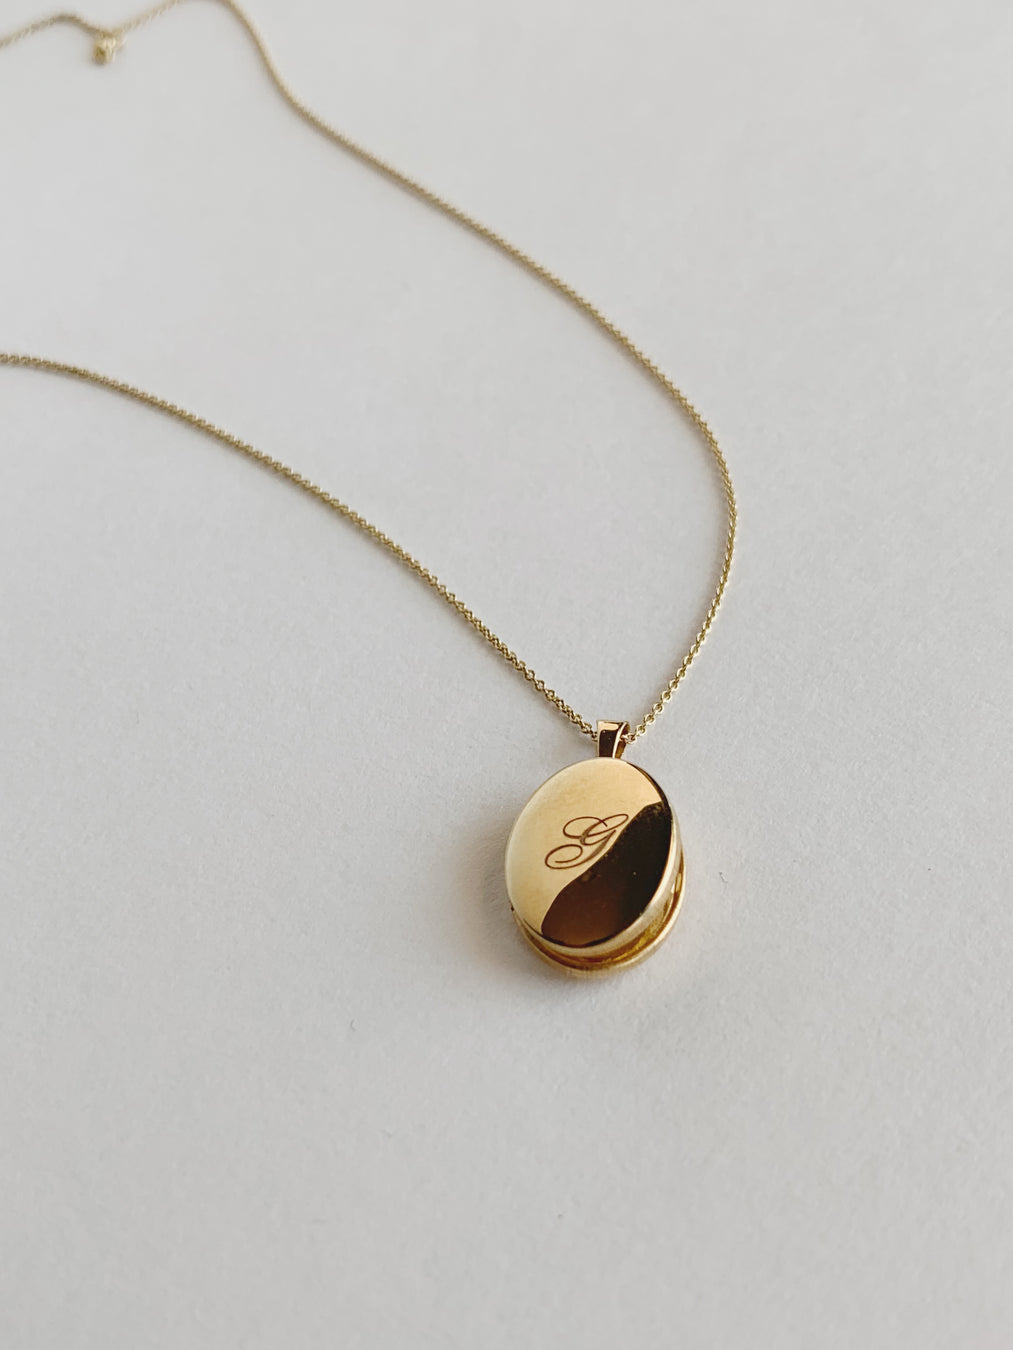 Maison Gold Locket